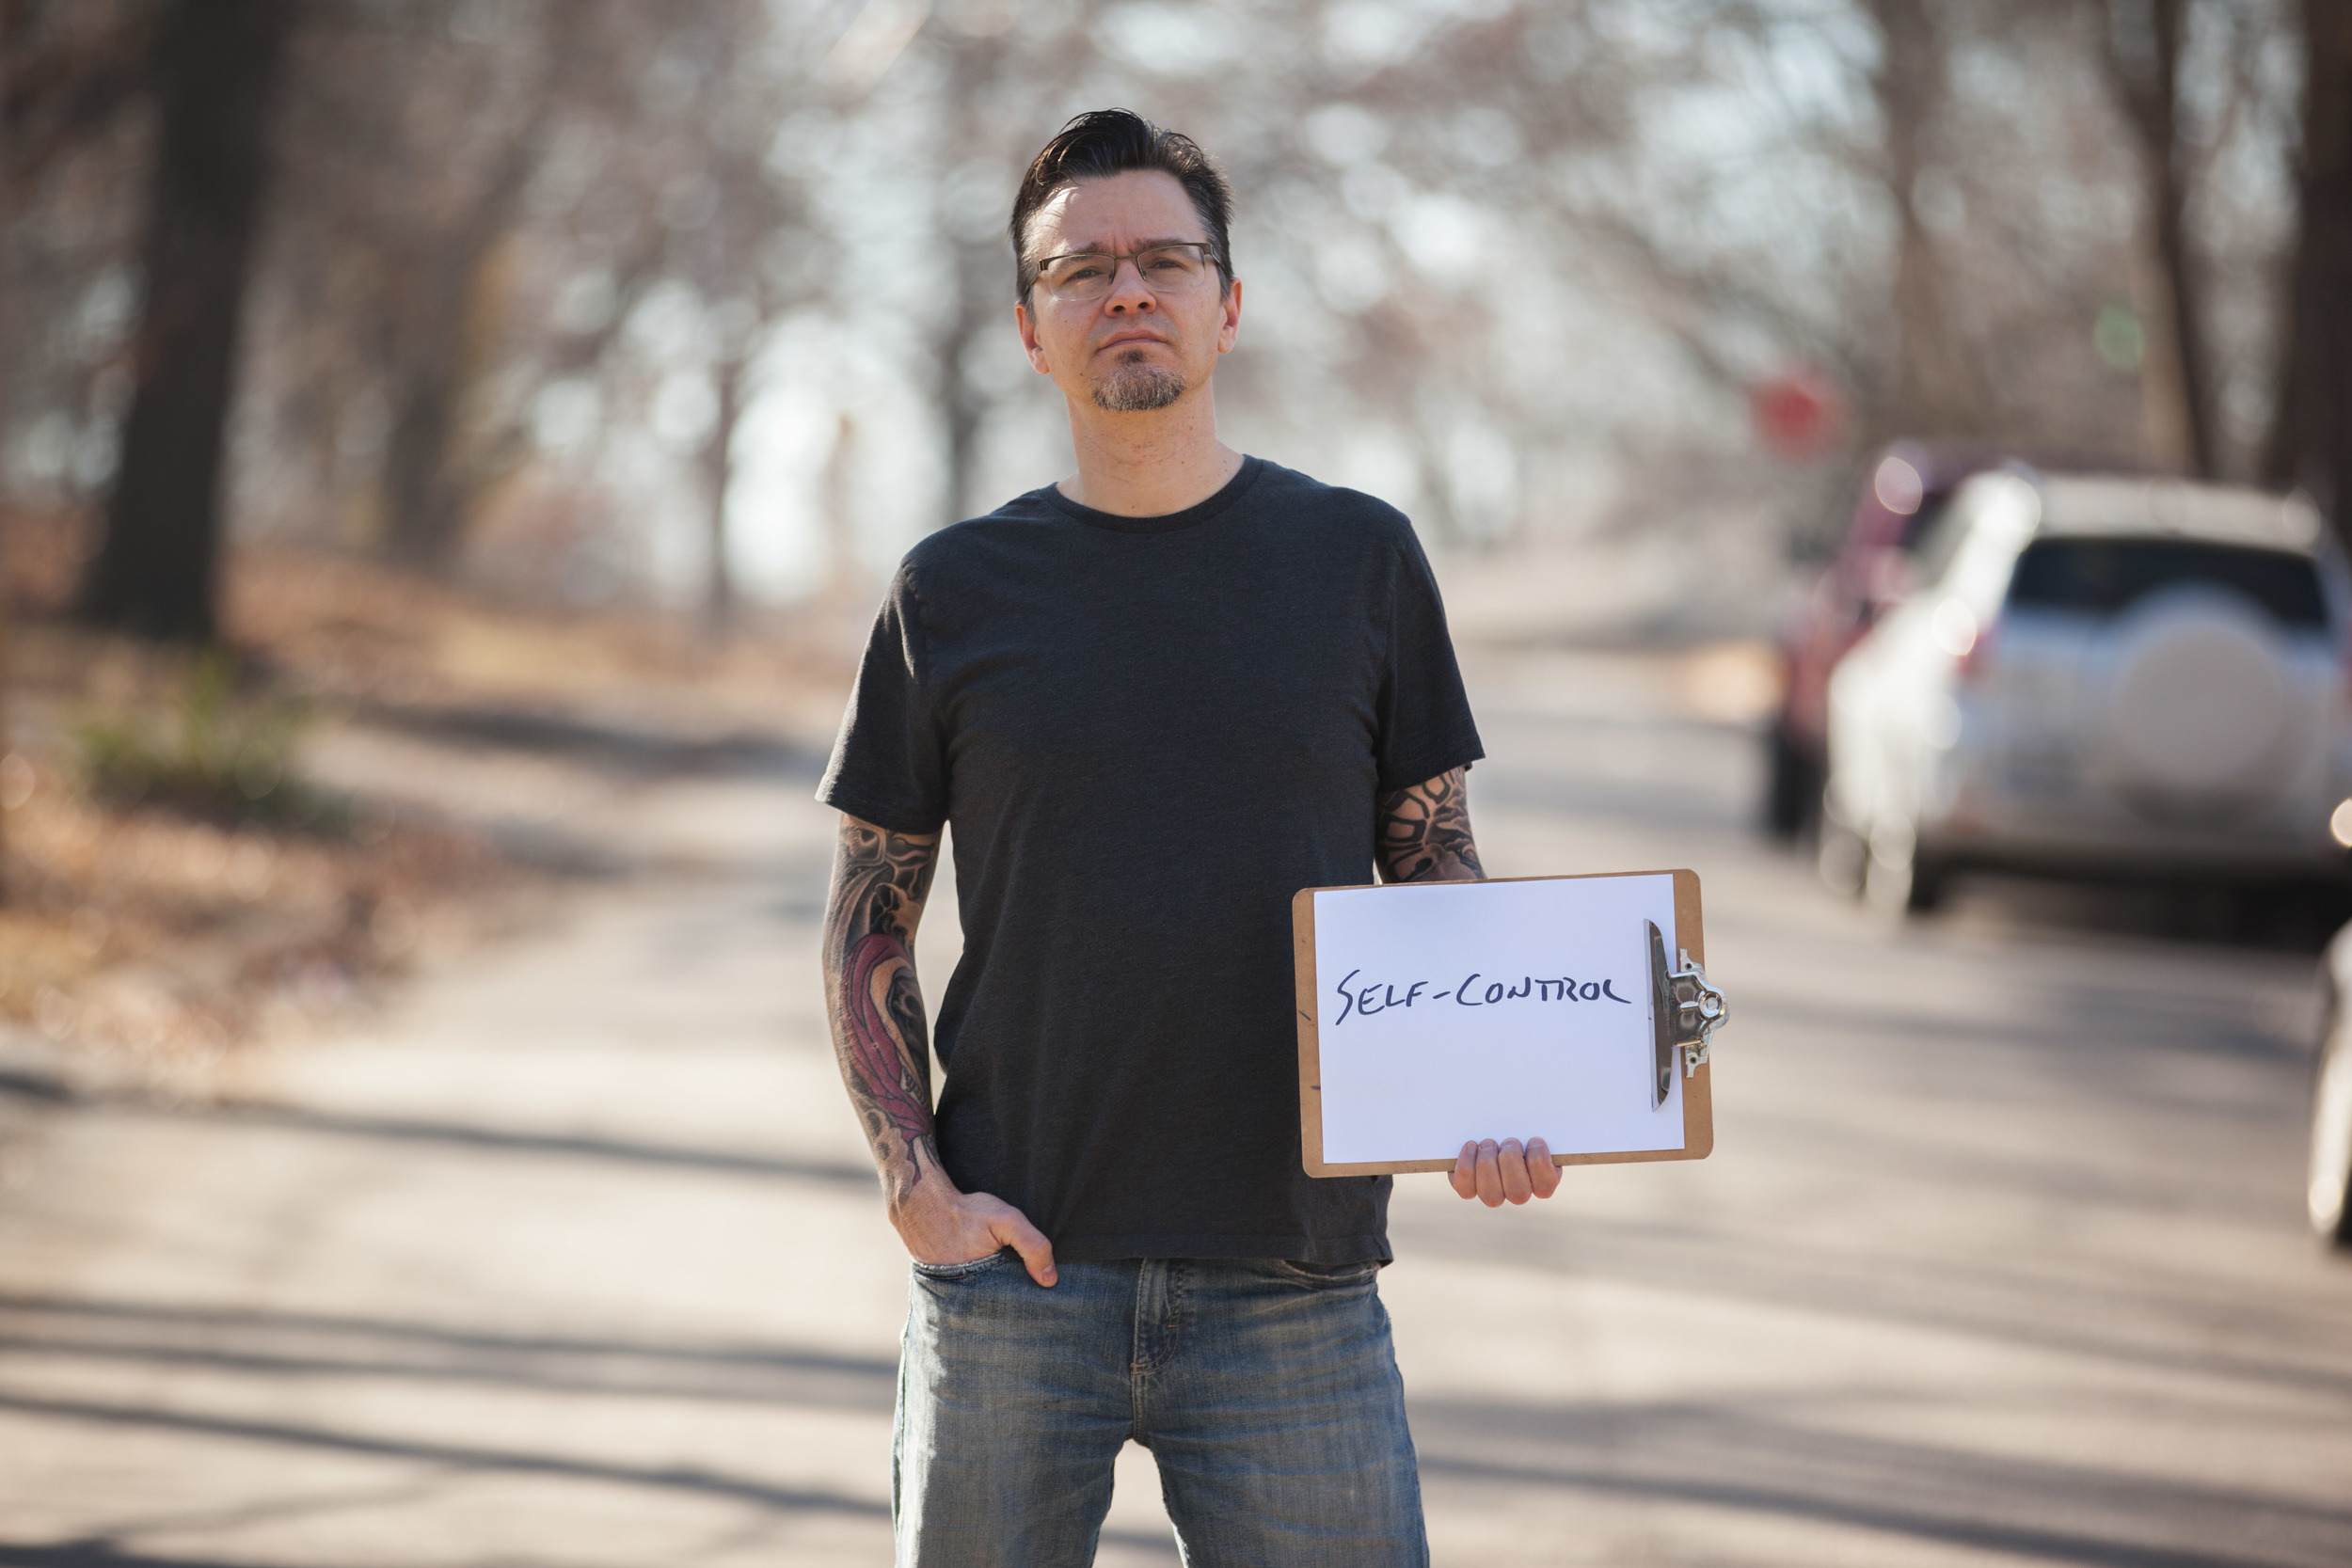 Man holding a sign that says self-control.